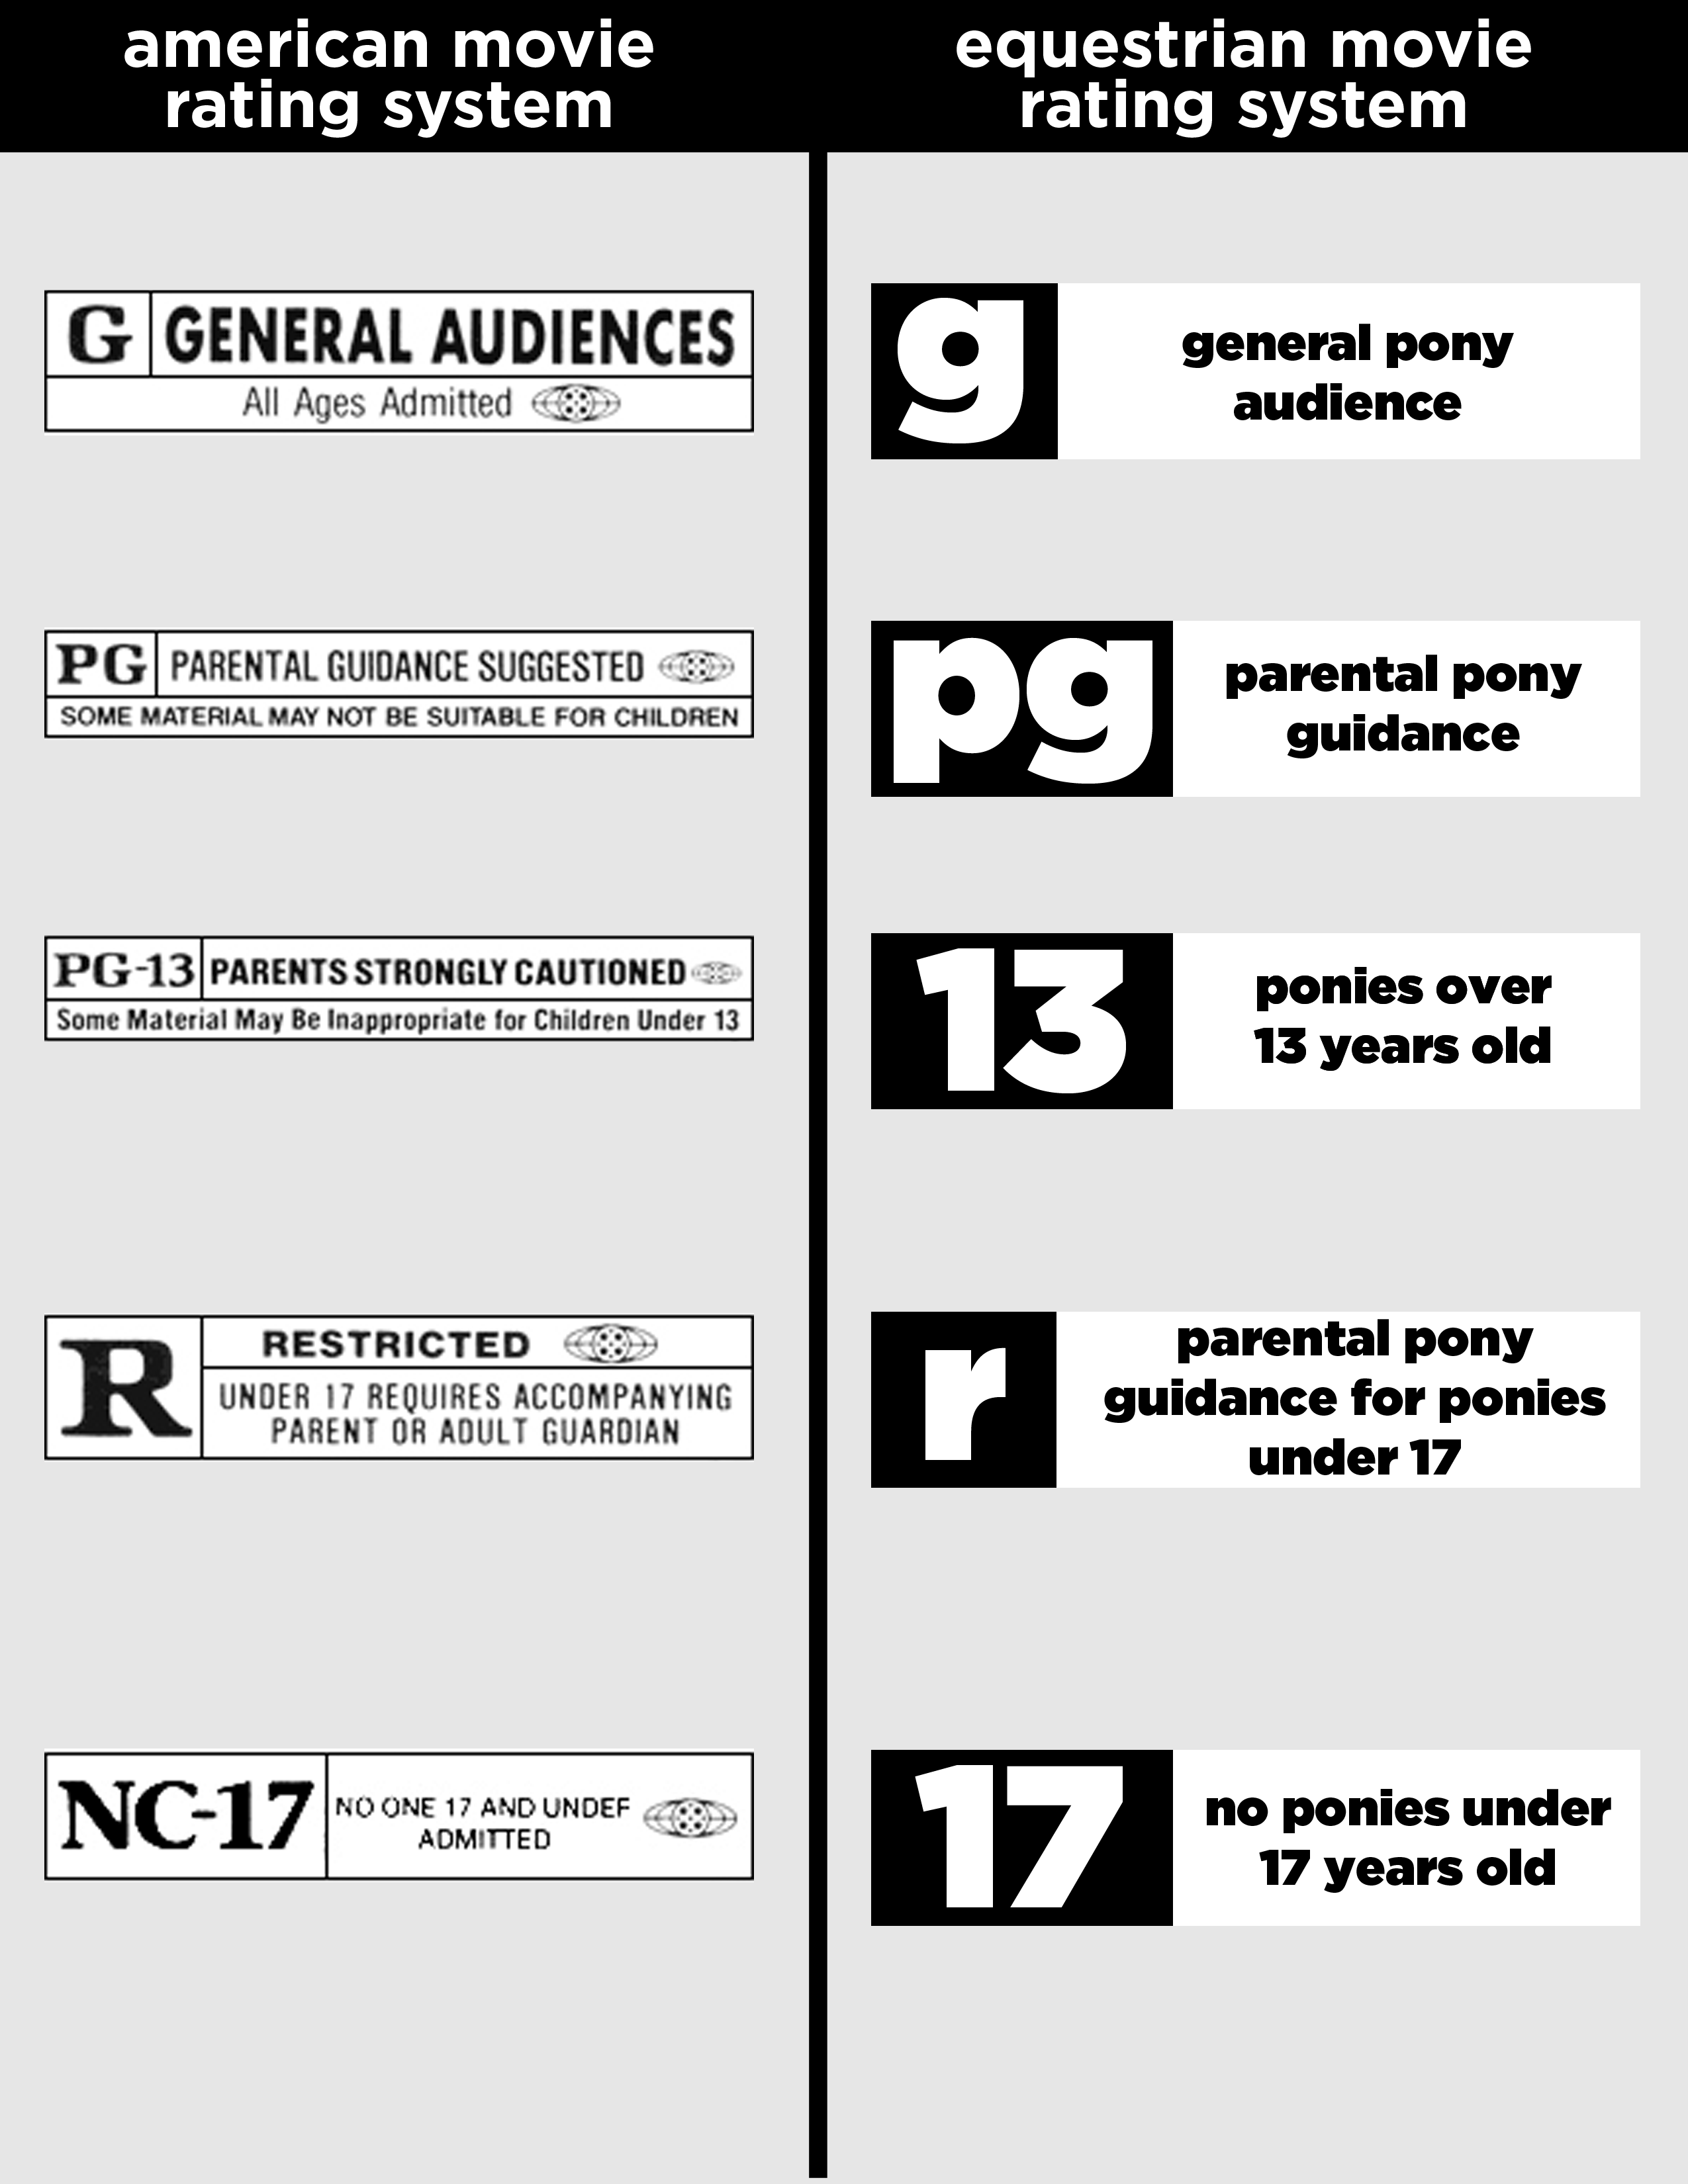 Ratings of movies